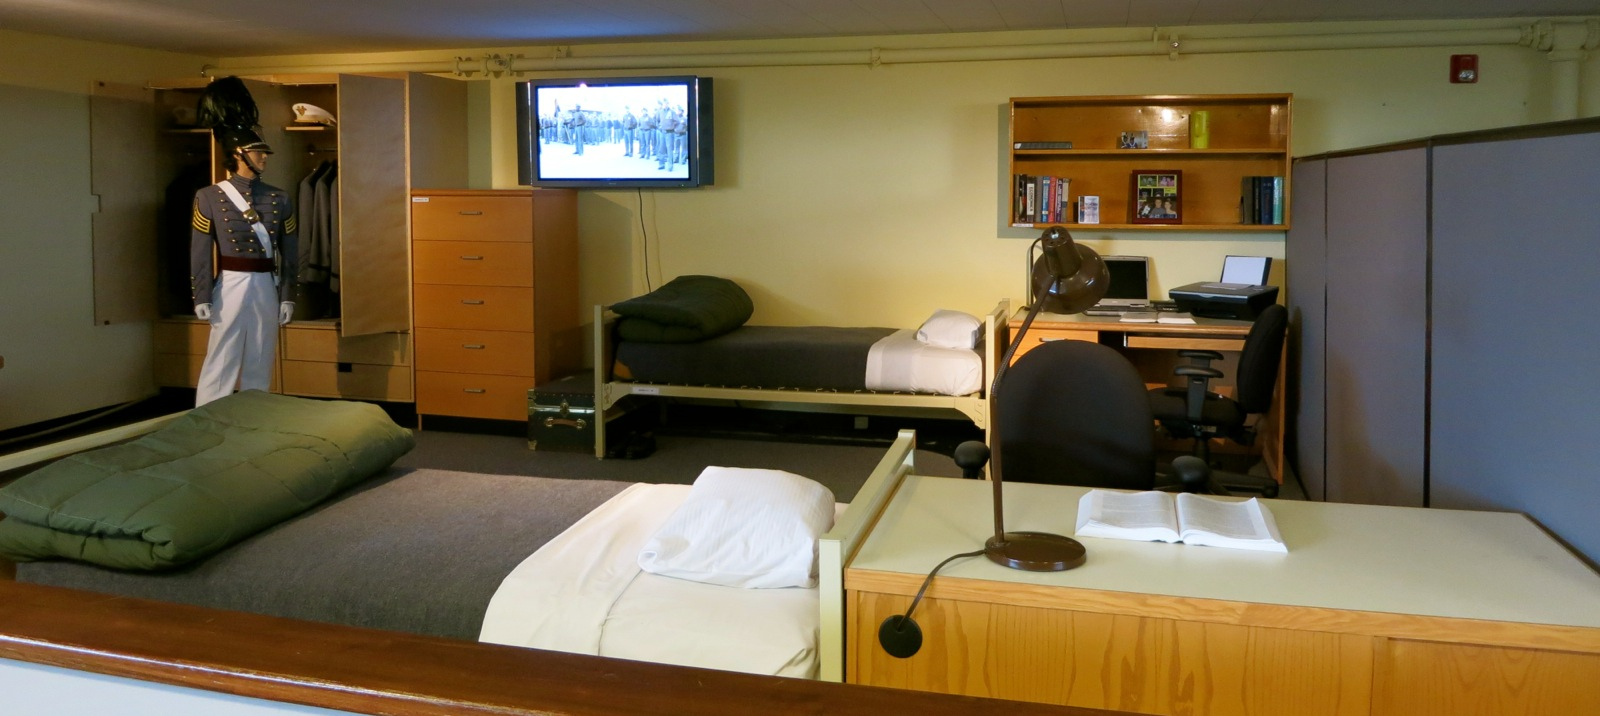 Nice Re Creation Of Cadet Dorm Room, West Point Military Academy NY Part 20